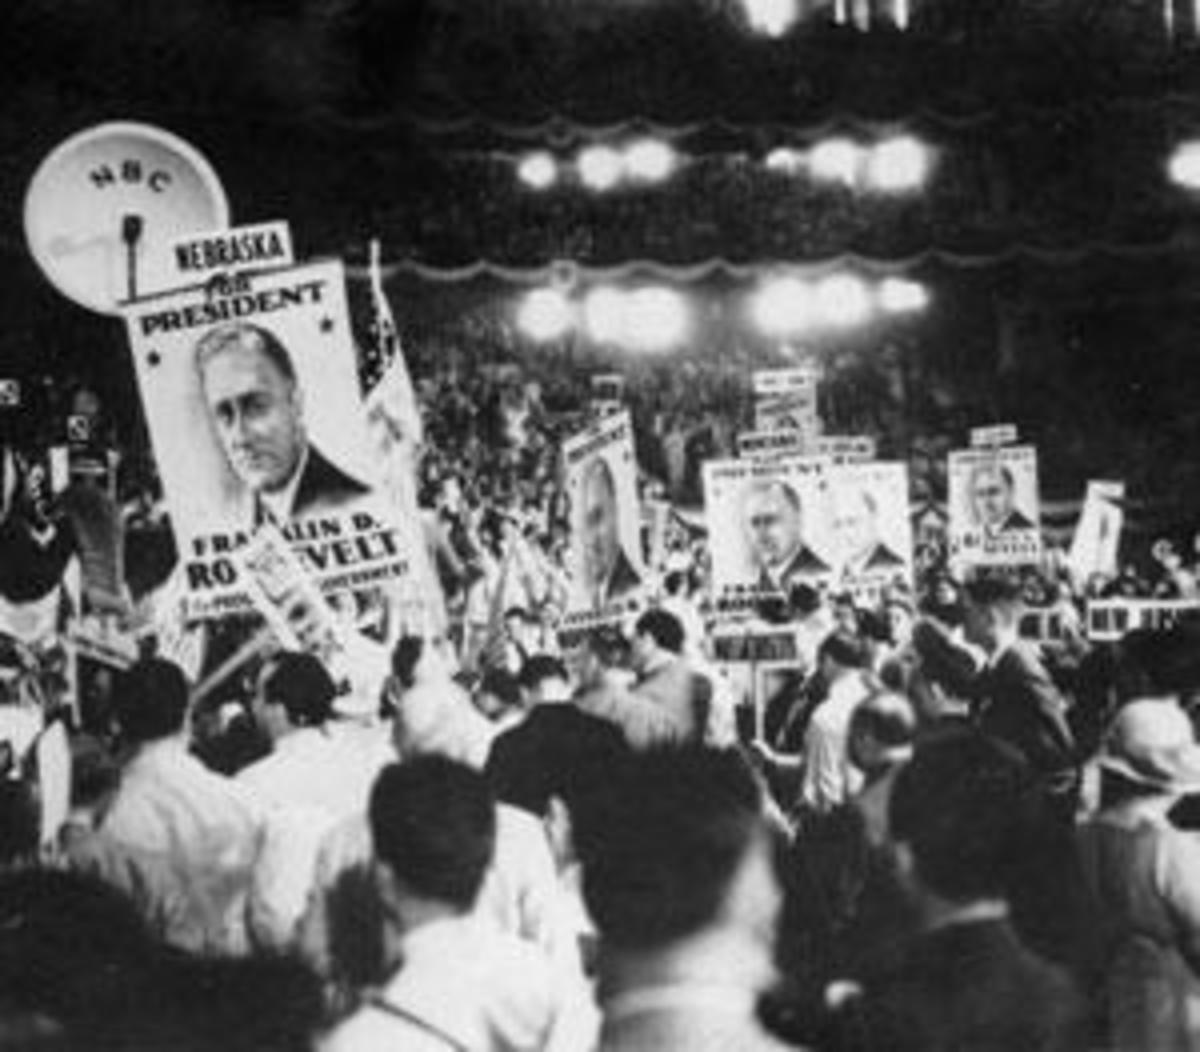 Supporters of Franklin Delano Roosevelt attend the 1932 Democratic National Convention in New York City. (Credit: Imagno/Getty Images)